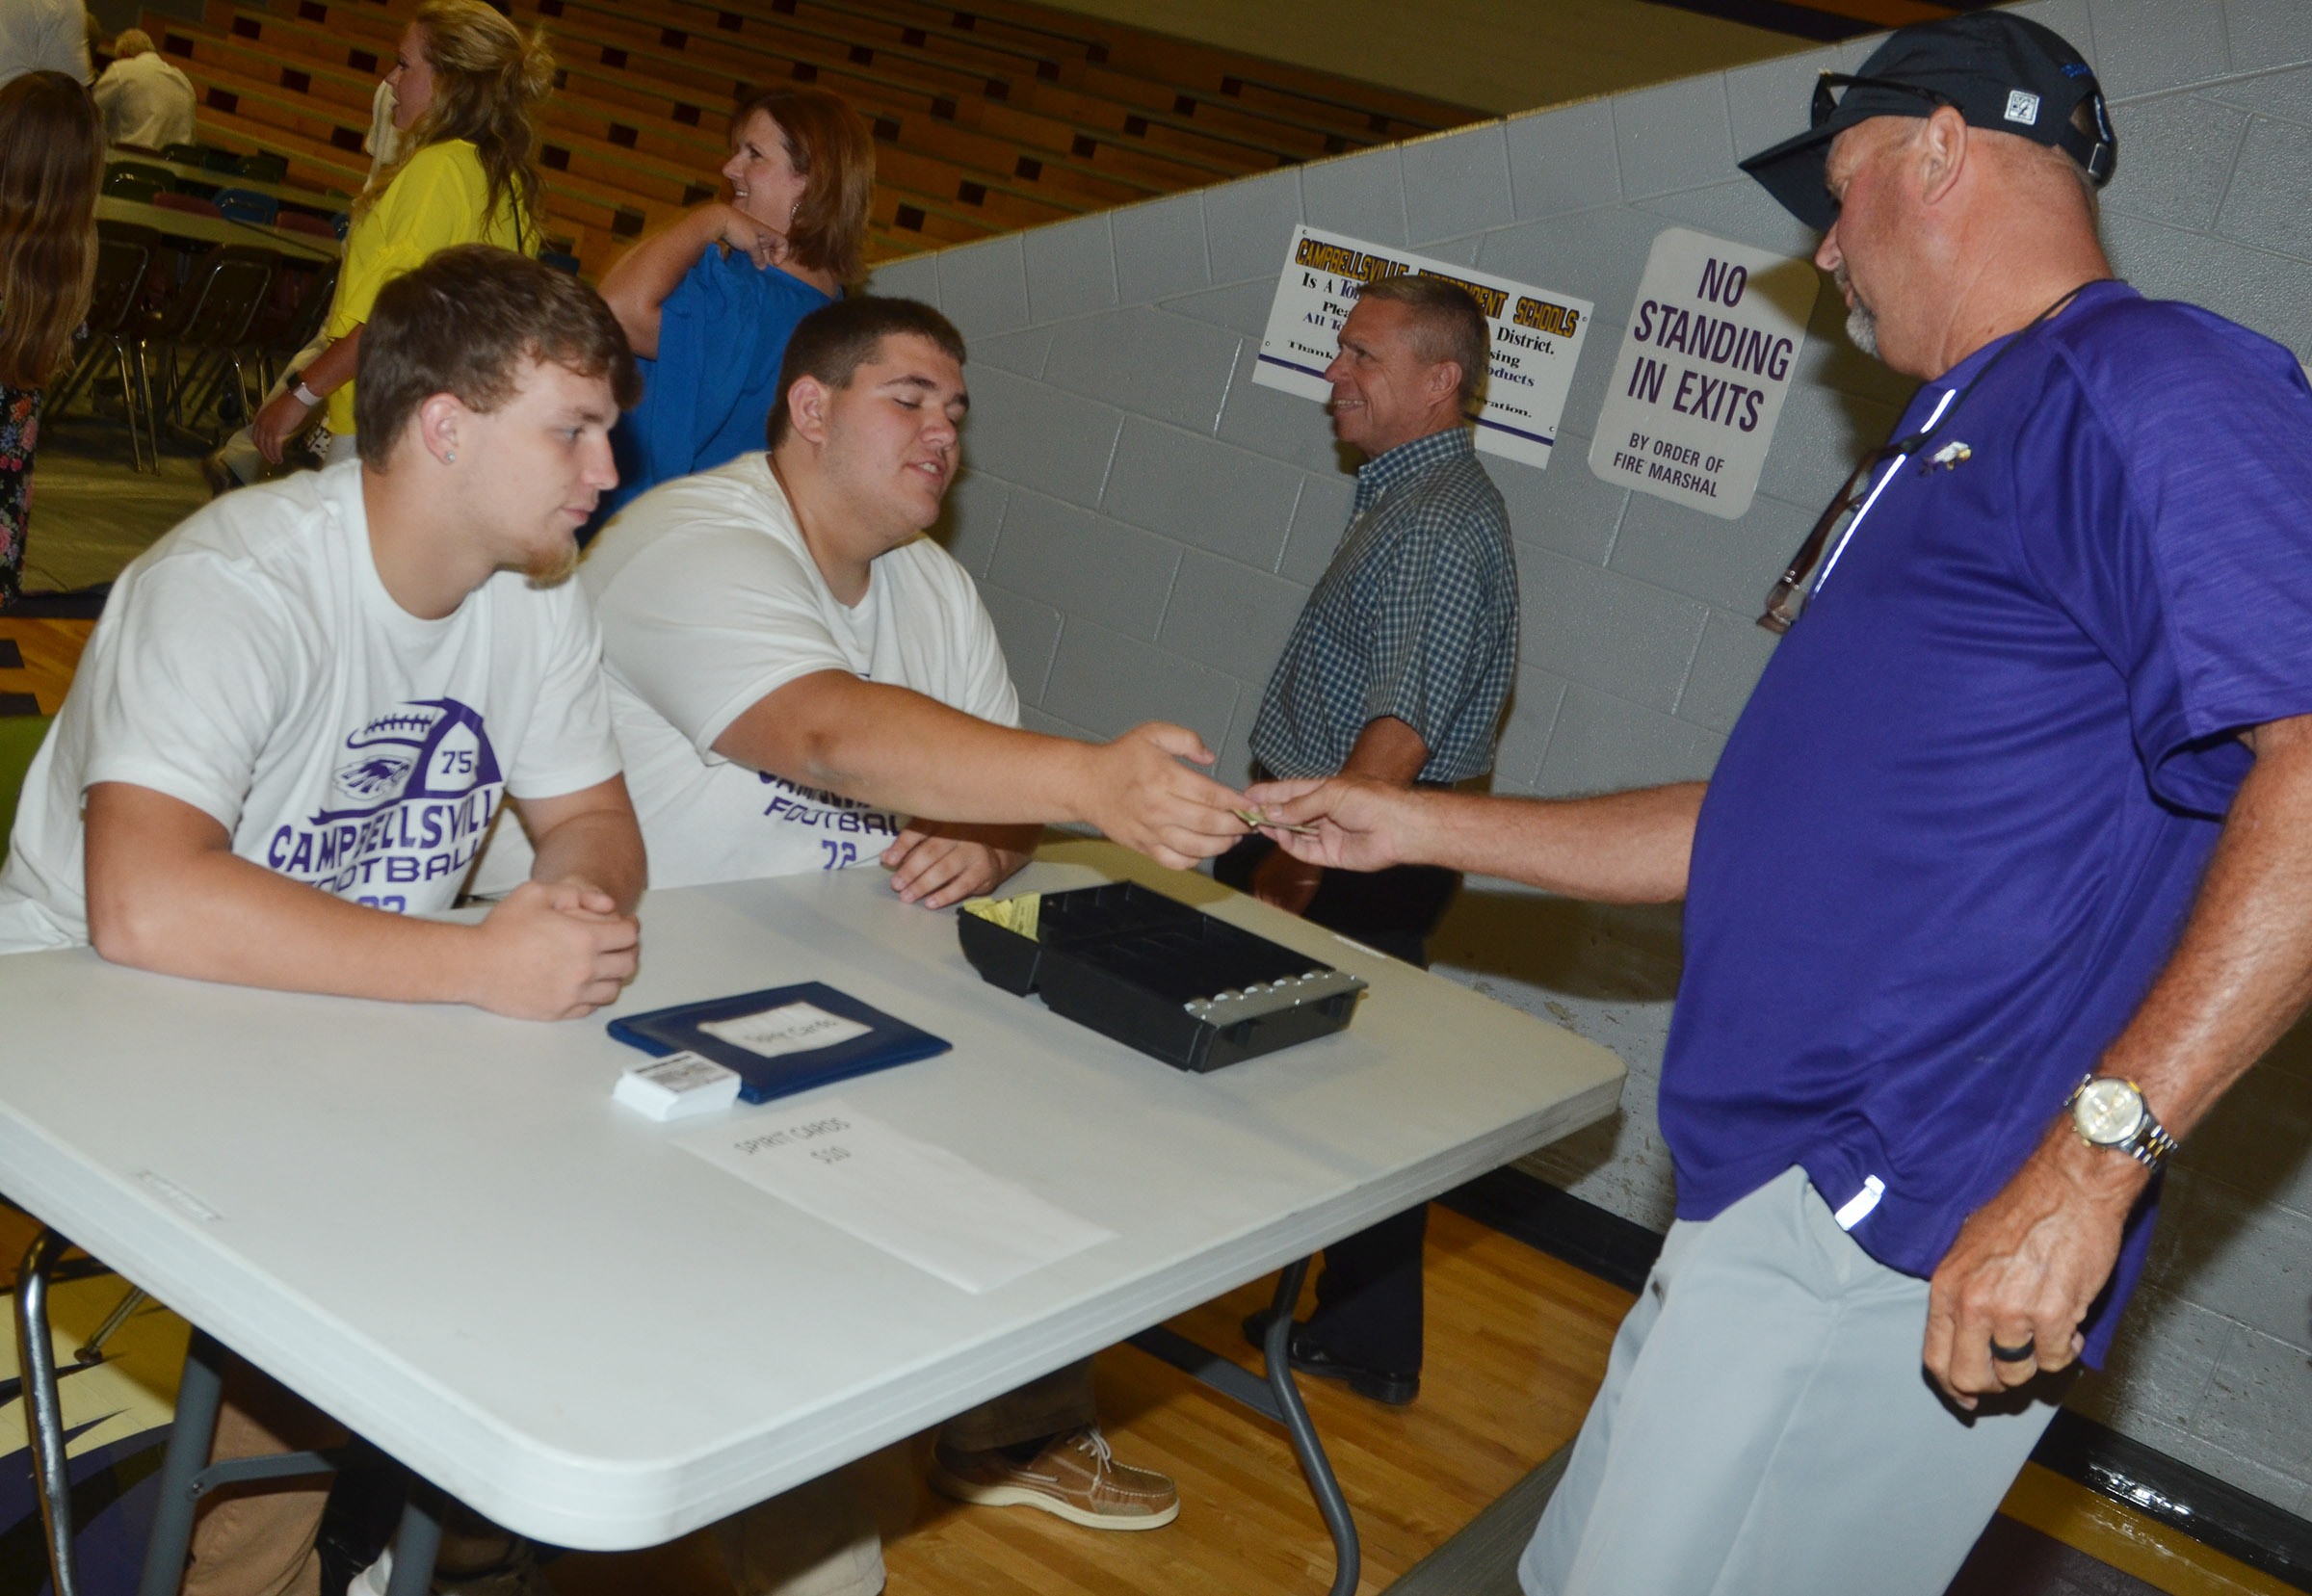 CHS junior Dakota Reardon, at left, and senior Ryan Wiedewitsch sell a dinner ticket to CHS Athletic Director Tim Davis.